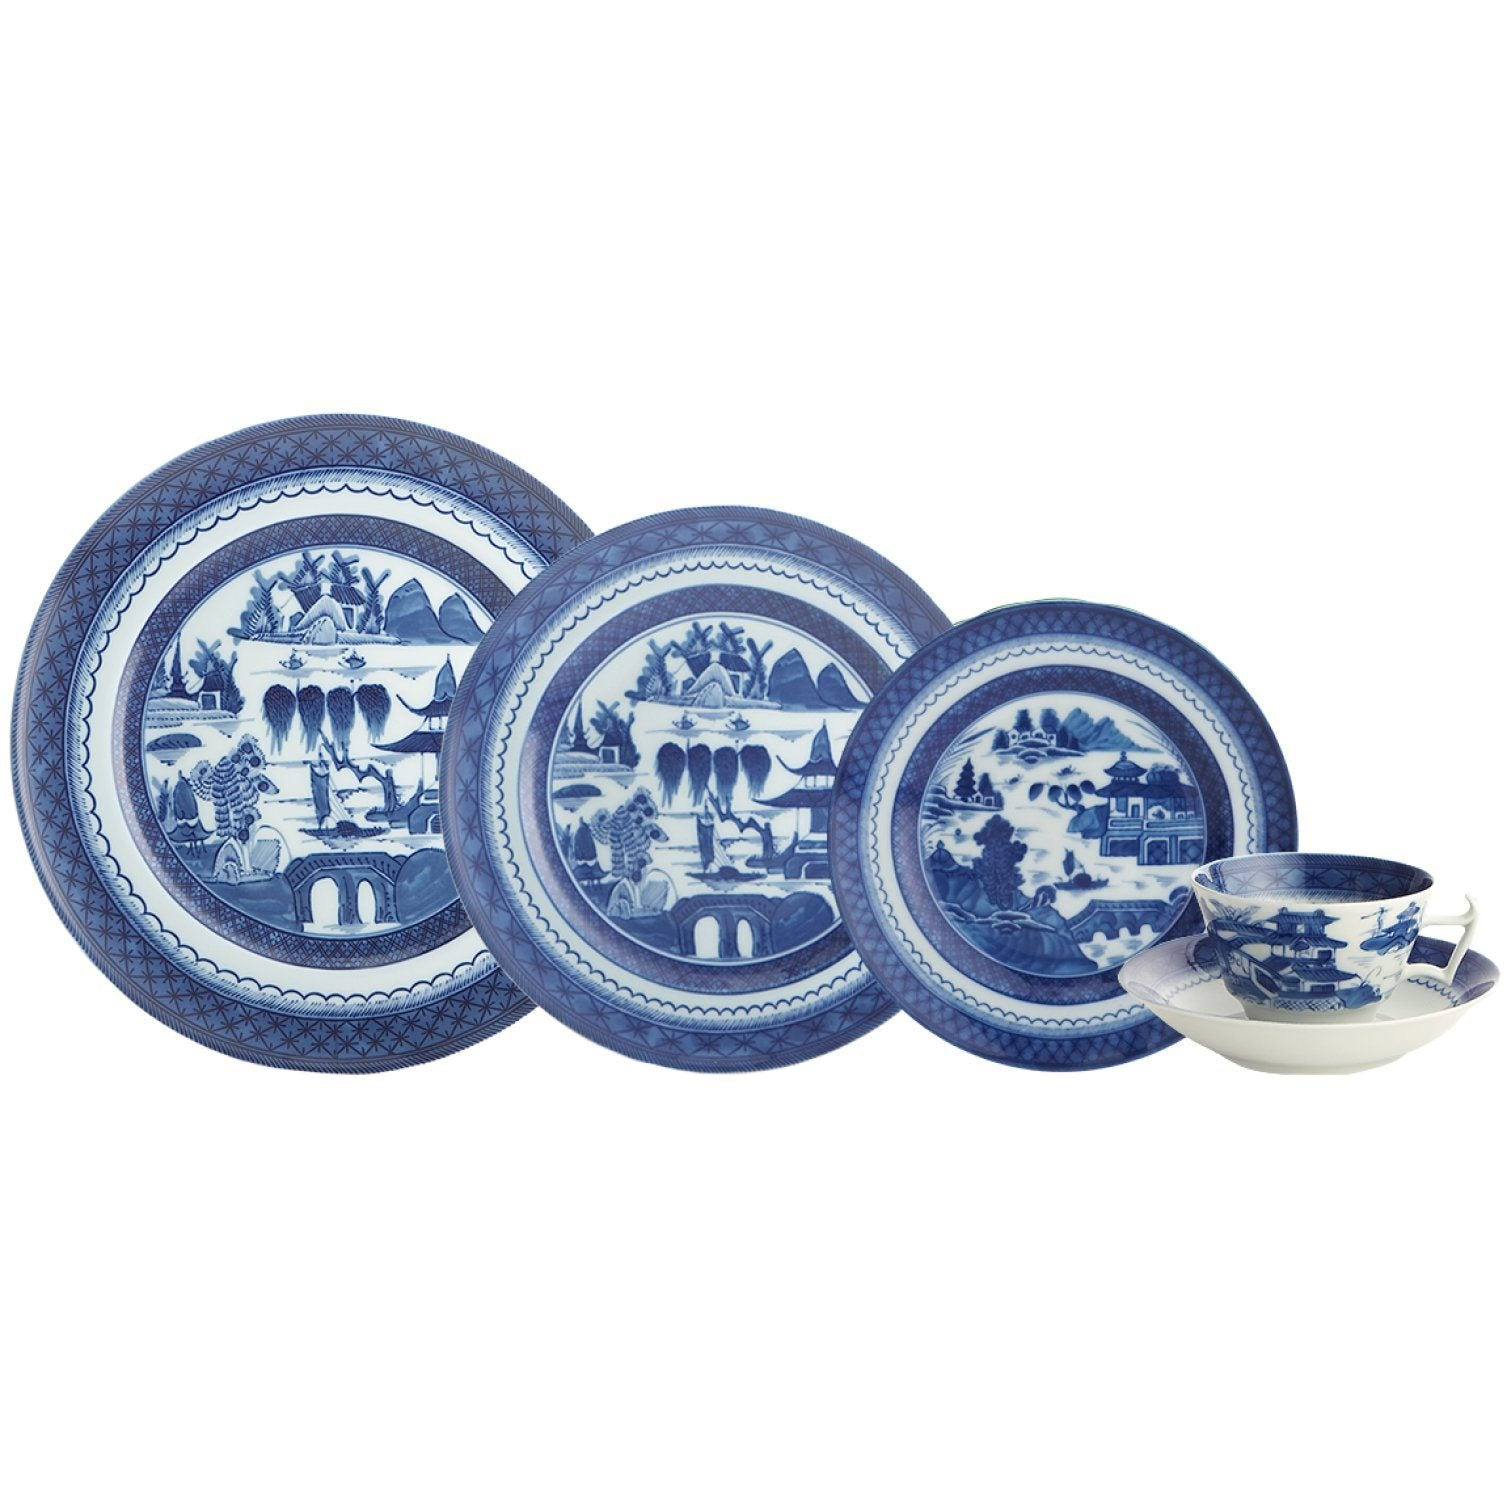 Blue Canton China Collection